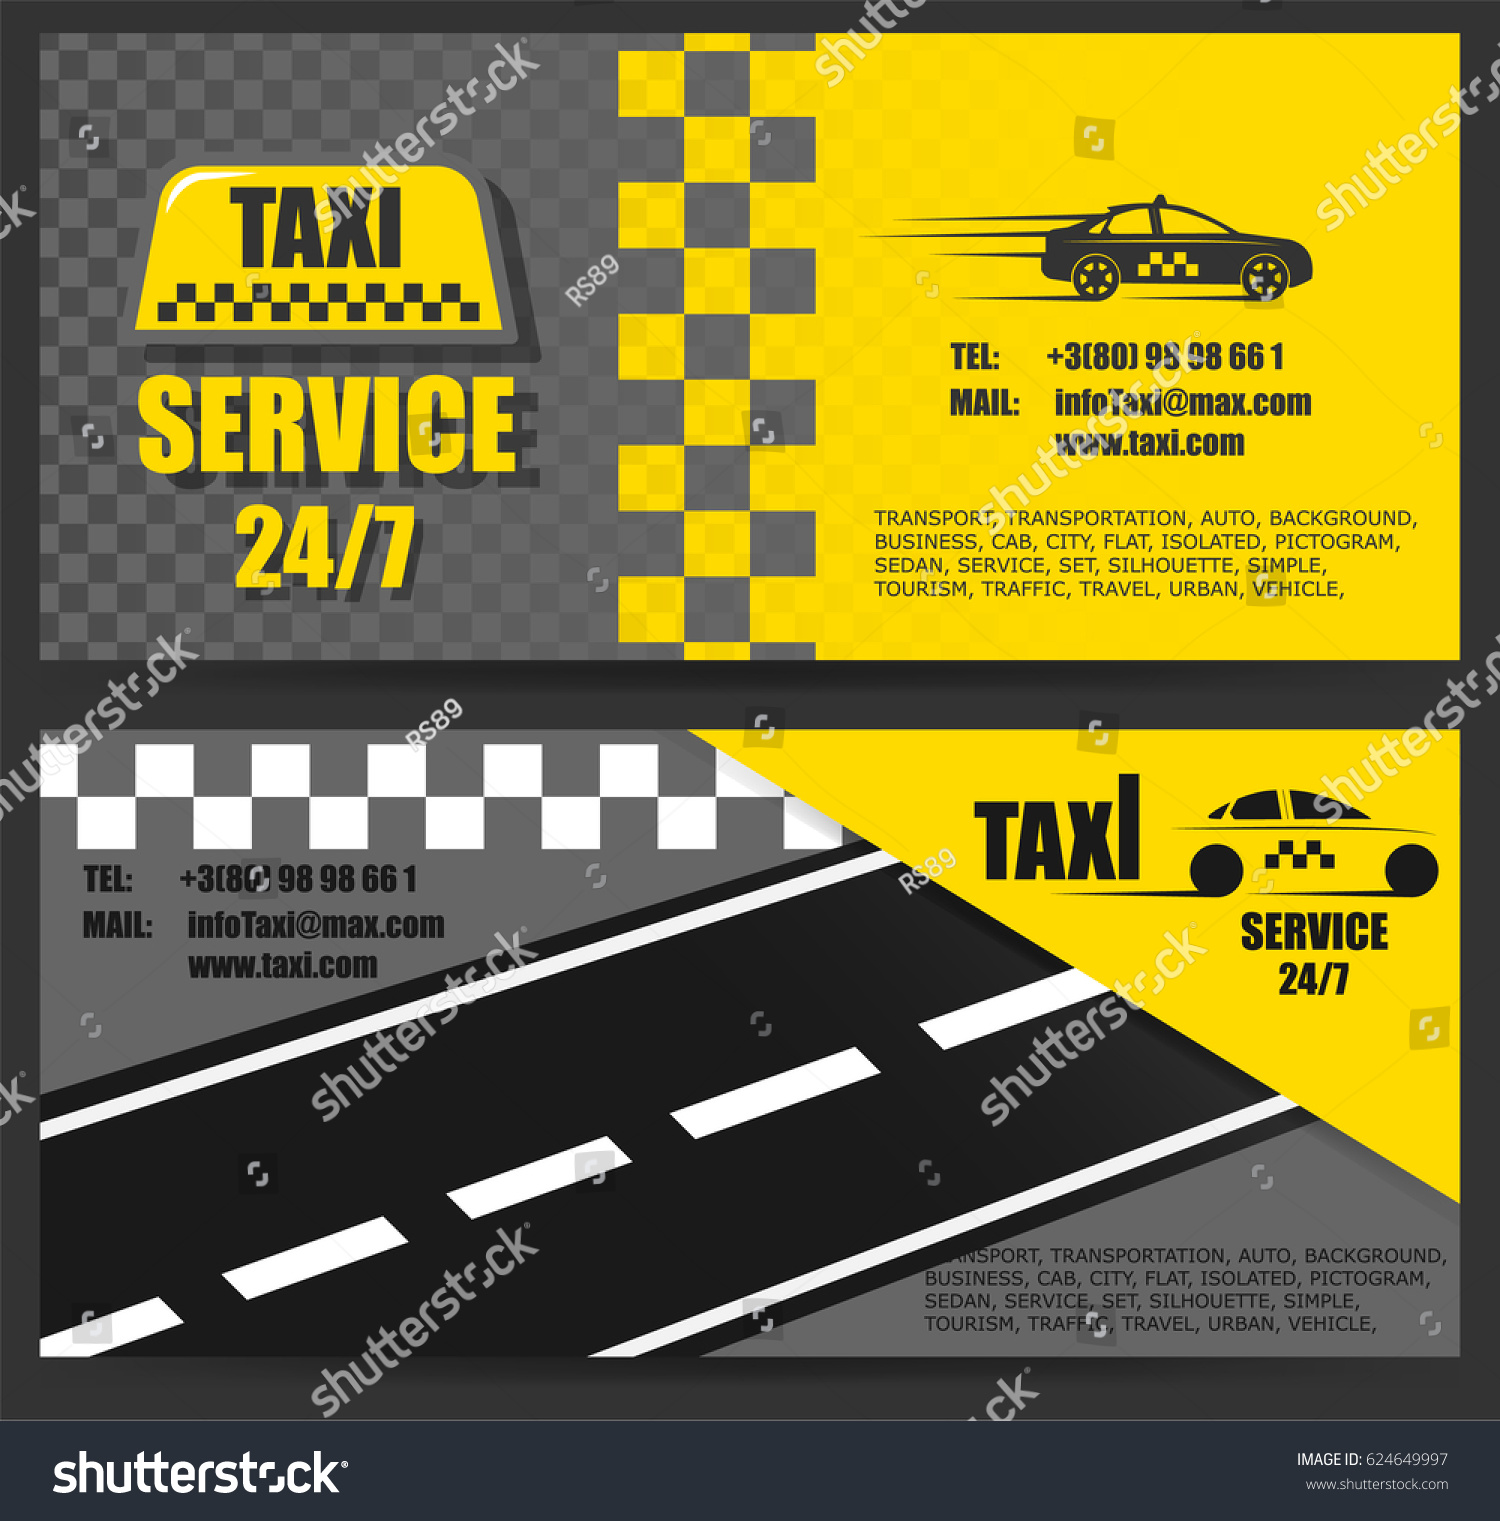 Taxi Business Card Work Taxi Around Stock Vector 624649997 ...